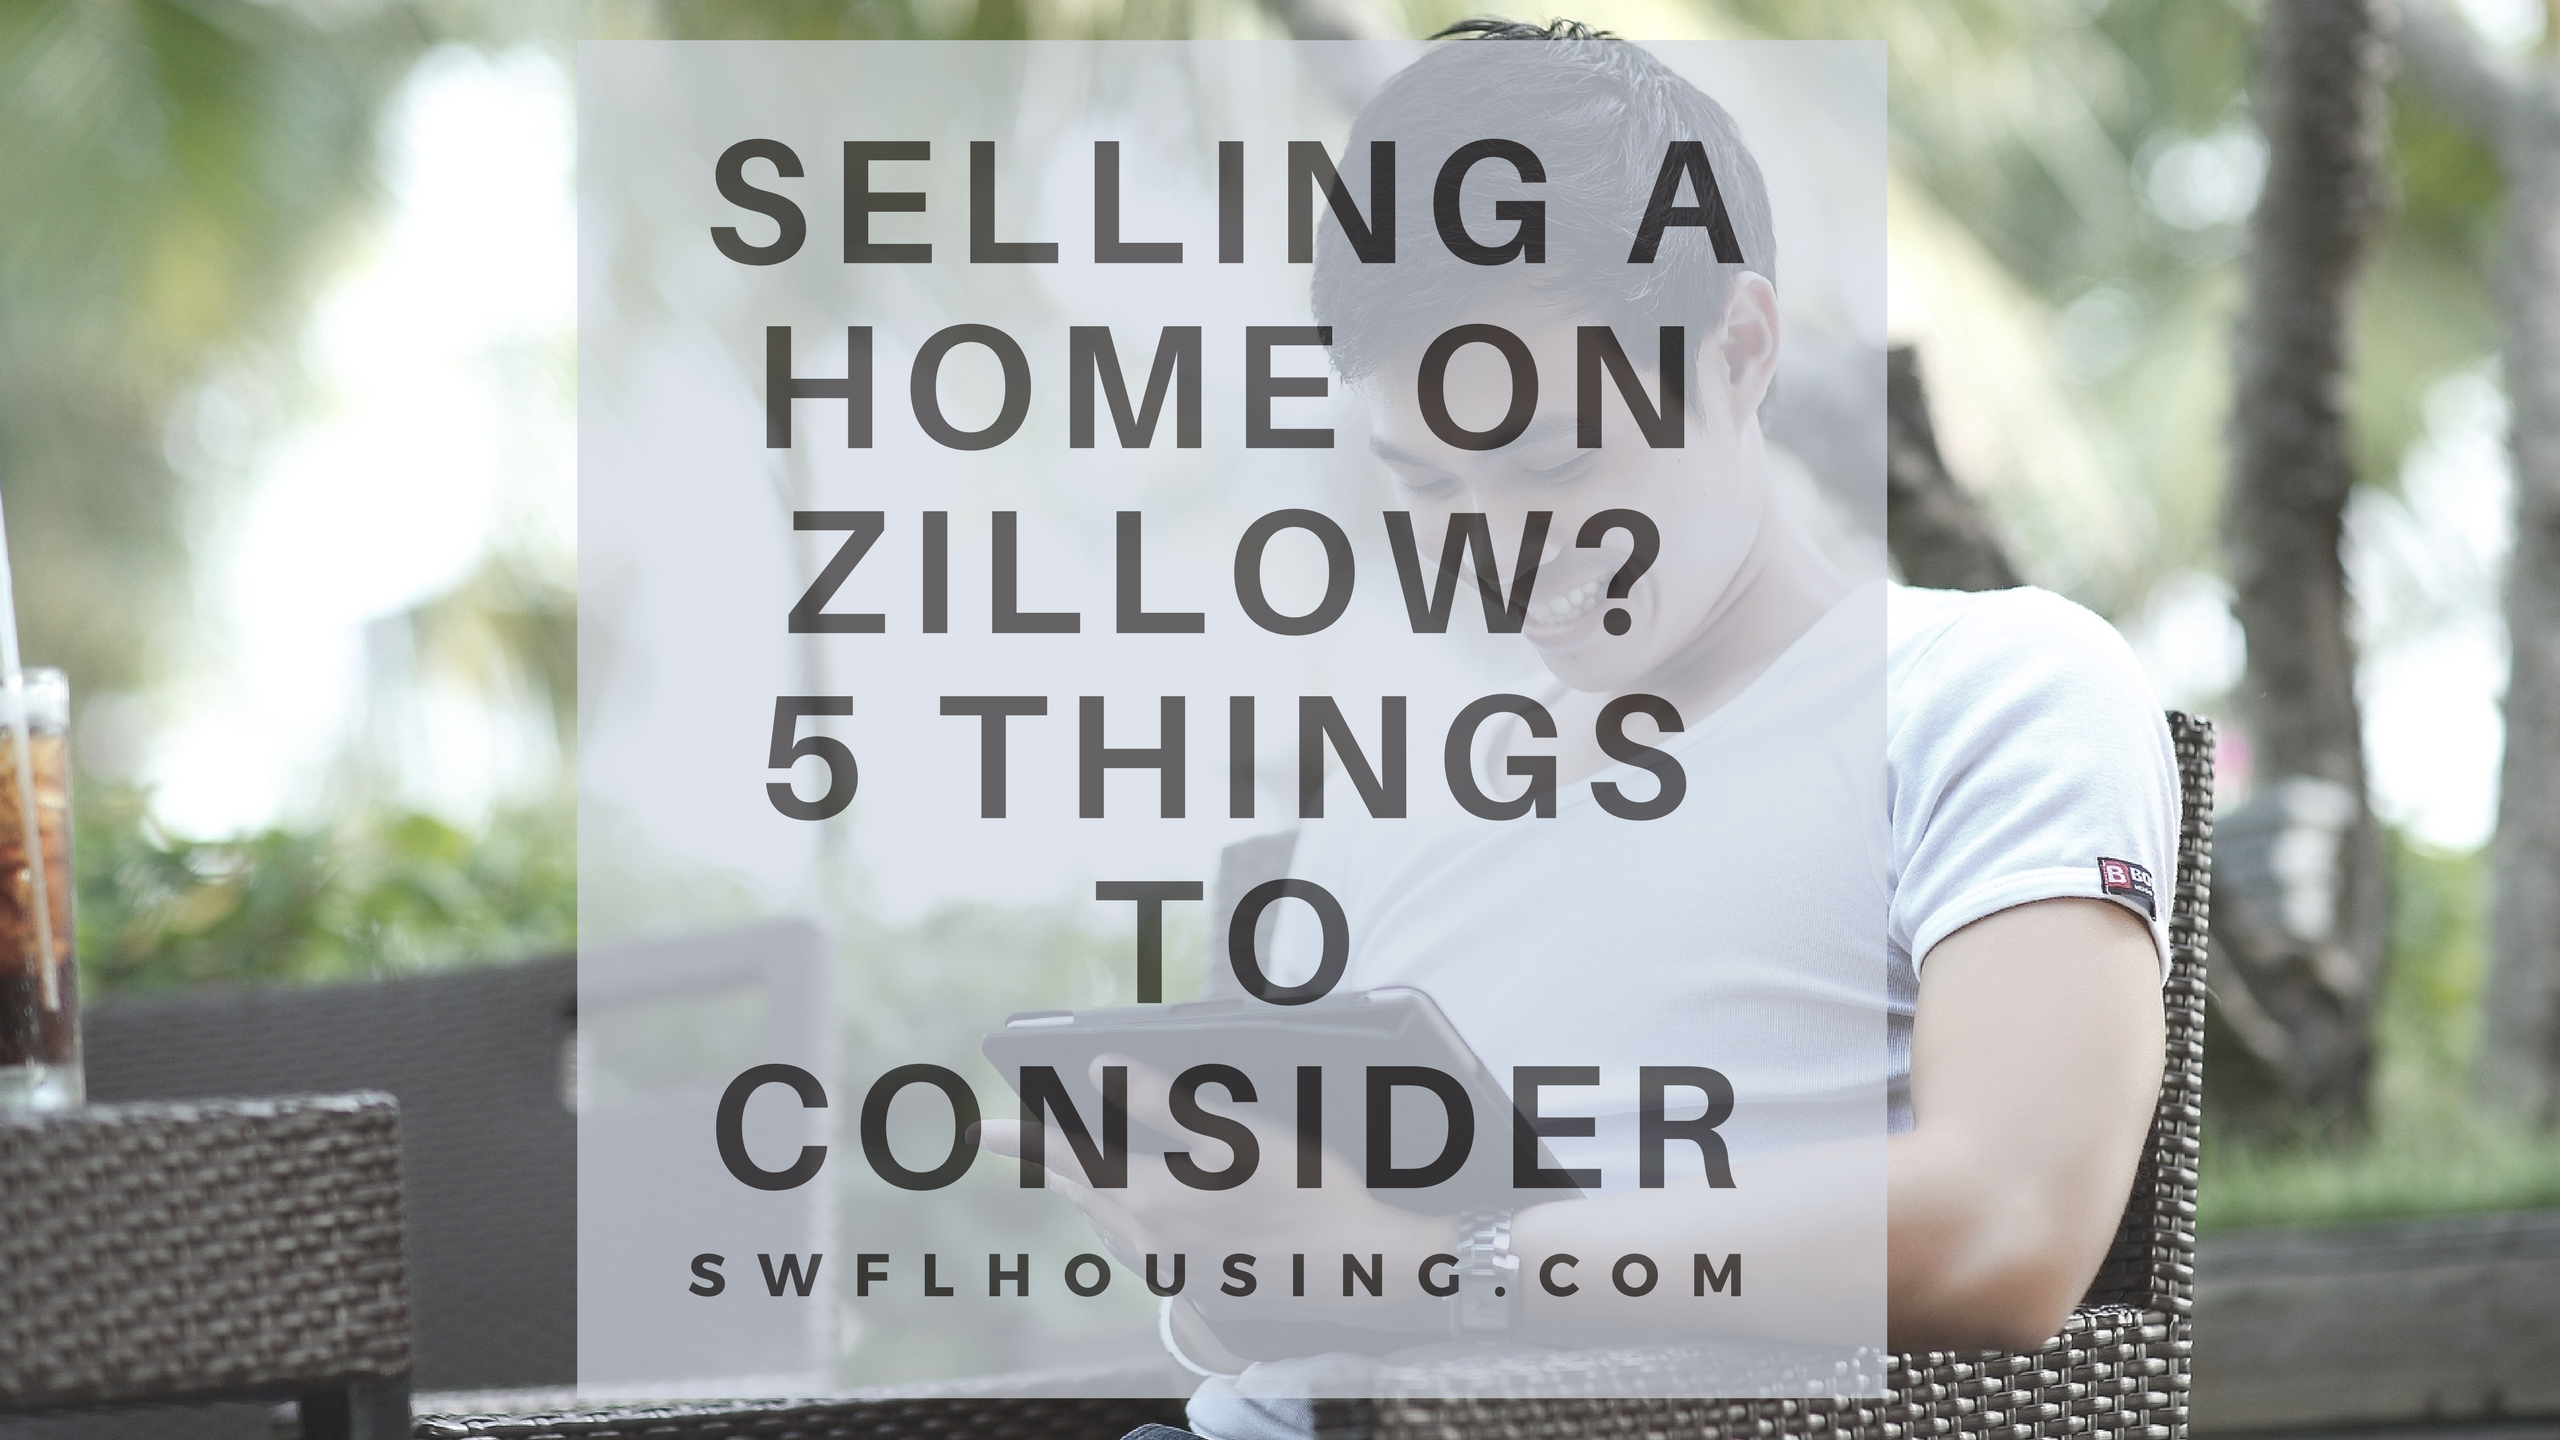 selling a home on zillow, 5 things to consider  homes for sale in bonita springs selling a house in